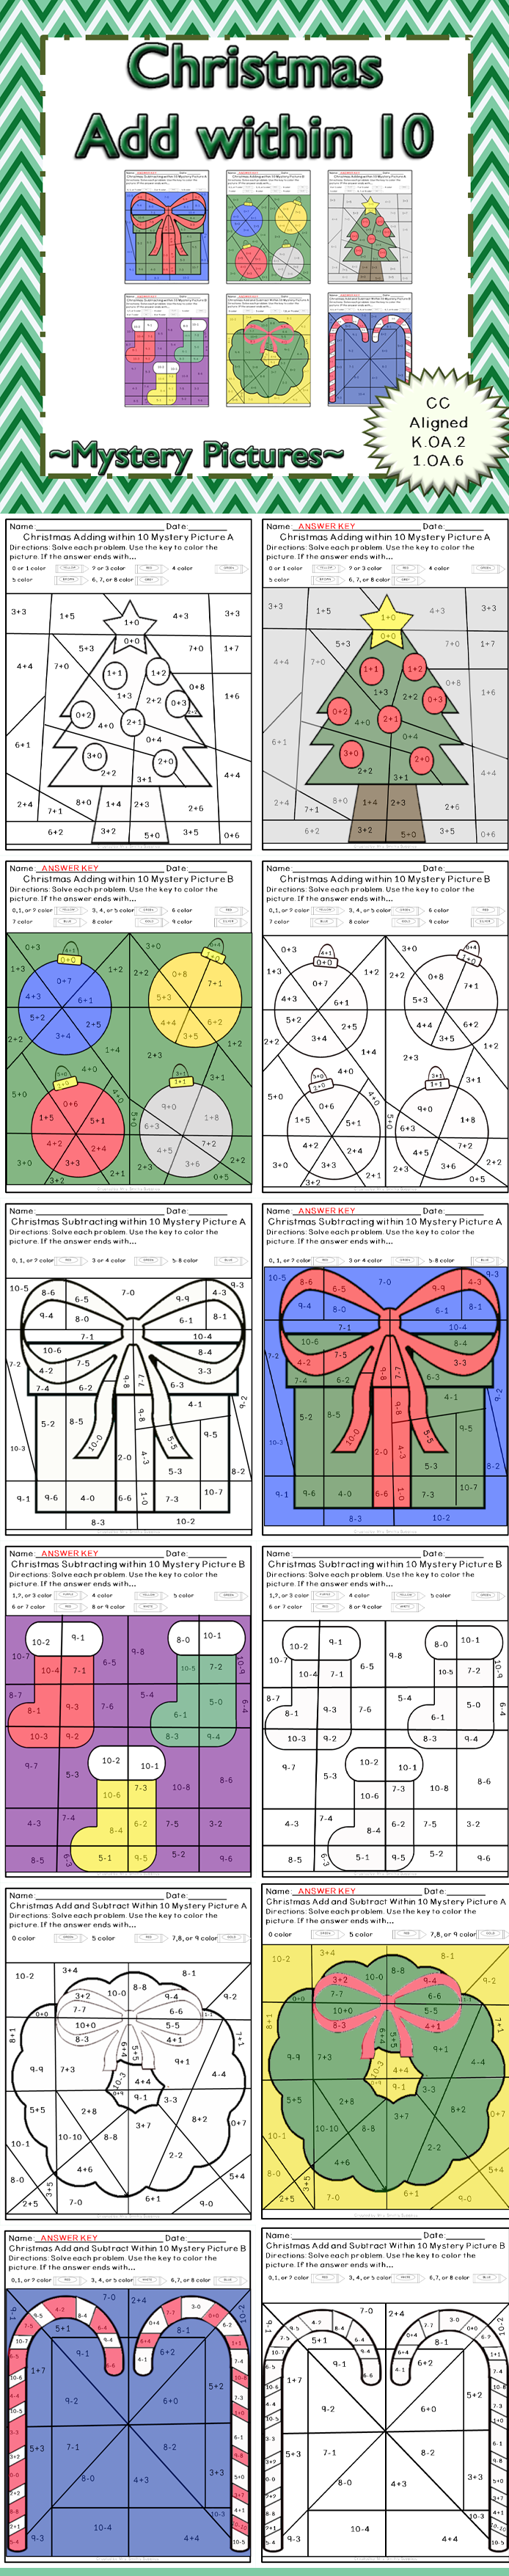 Christmas Add and Subtract within 10 Mystery Pictures | Worksheets ...